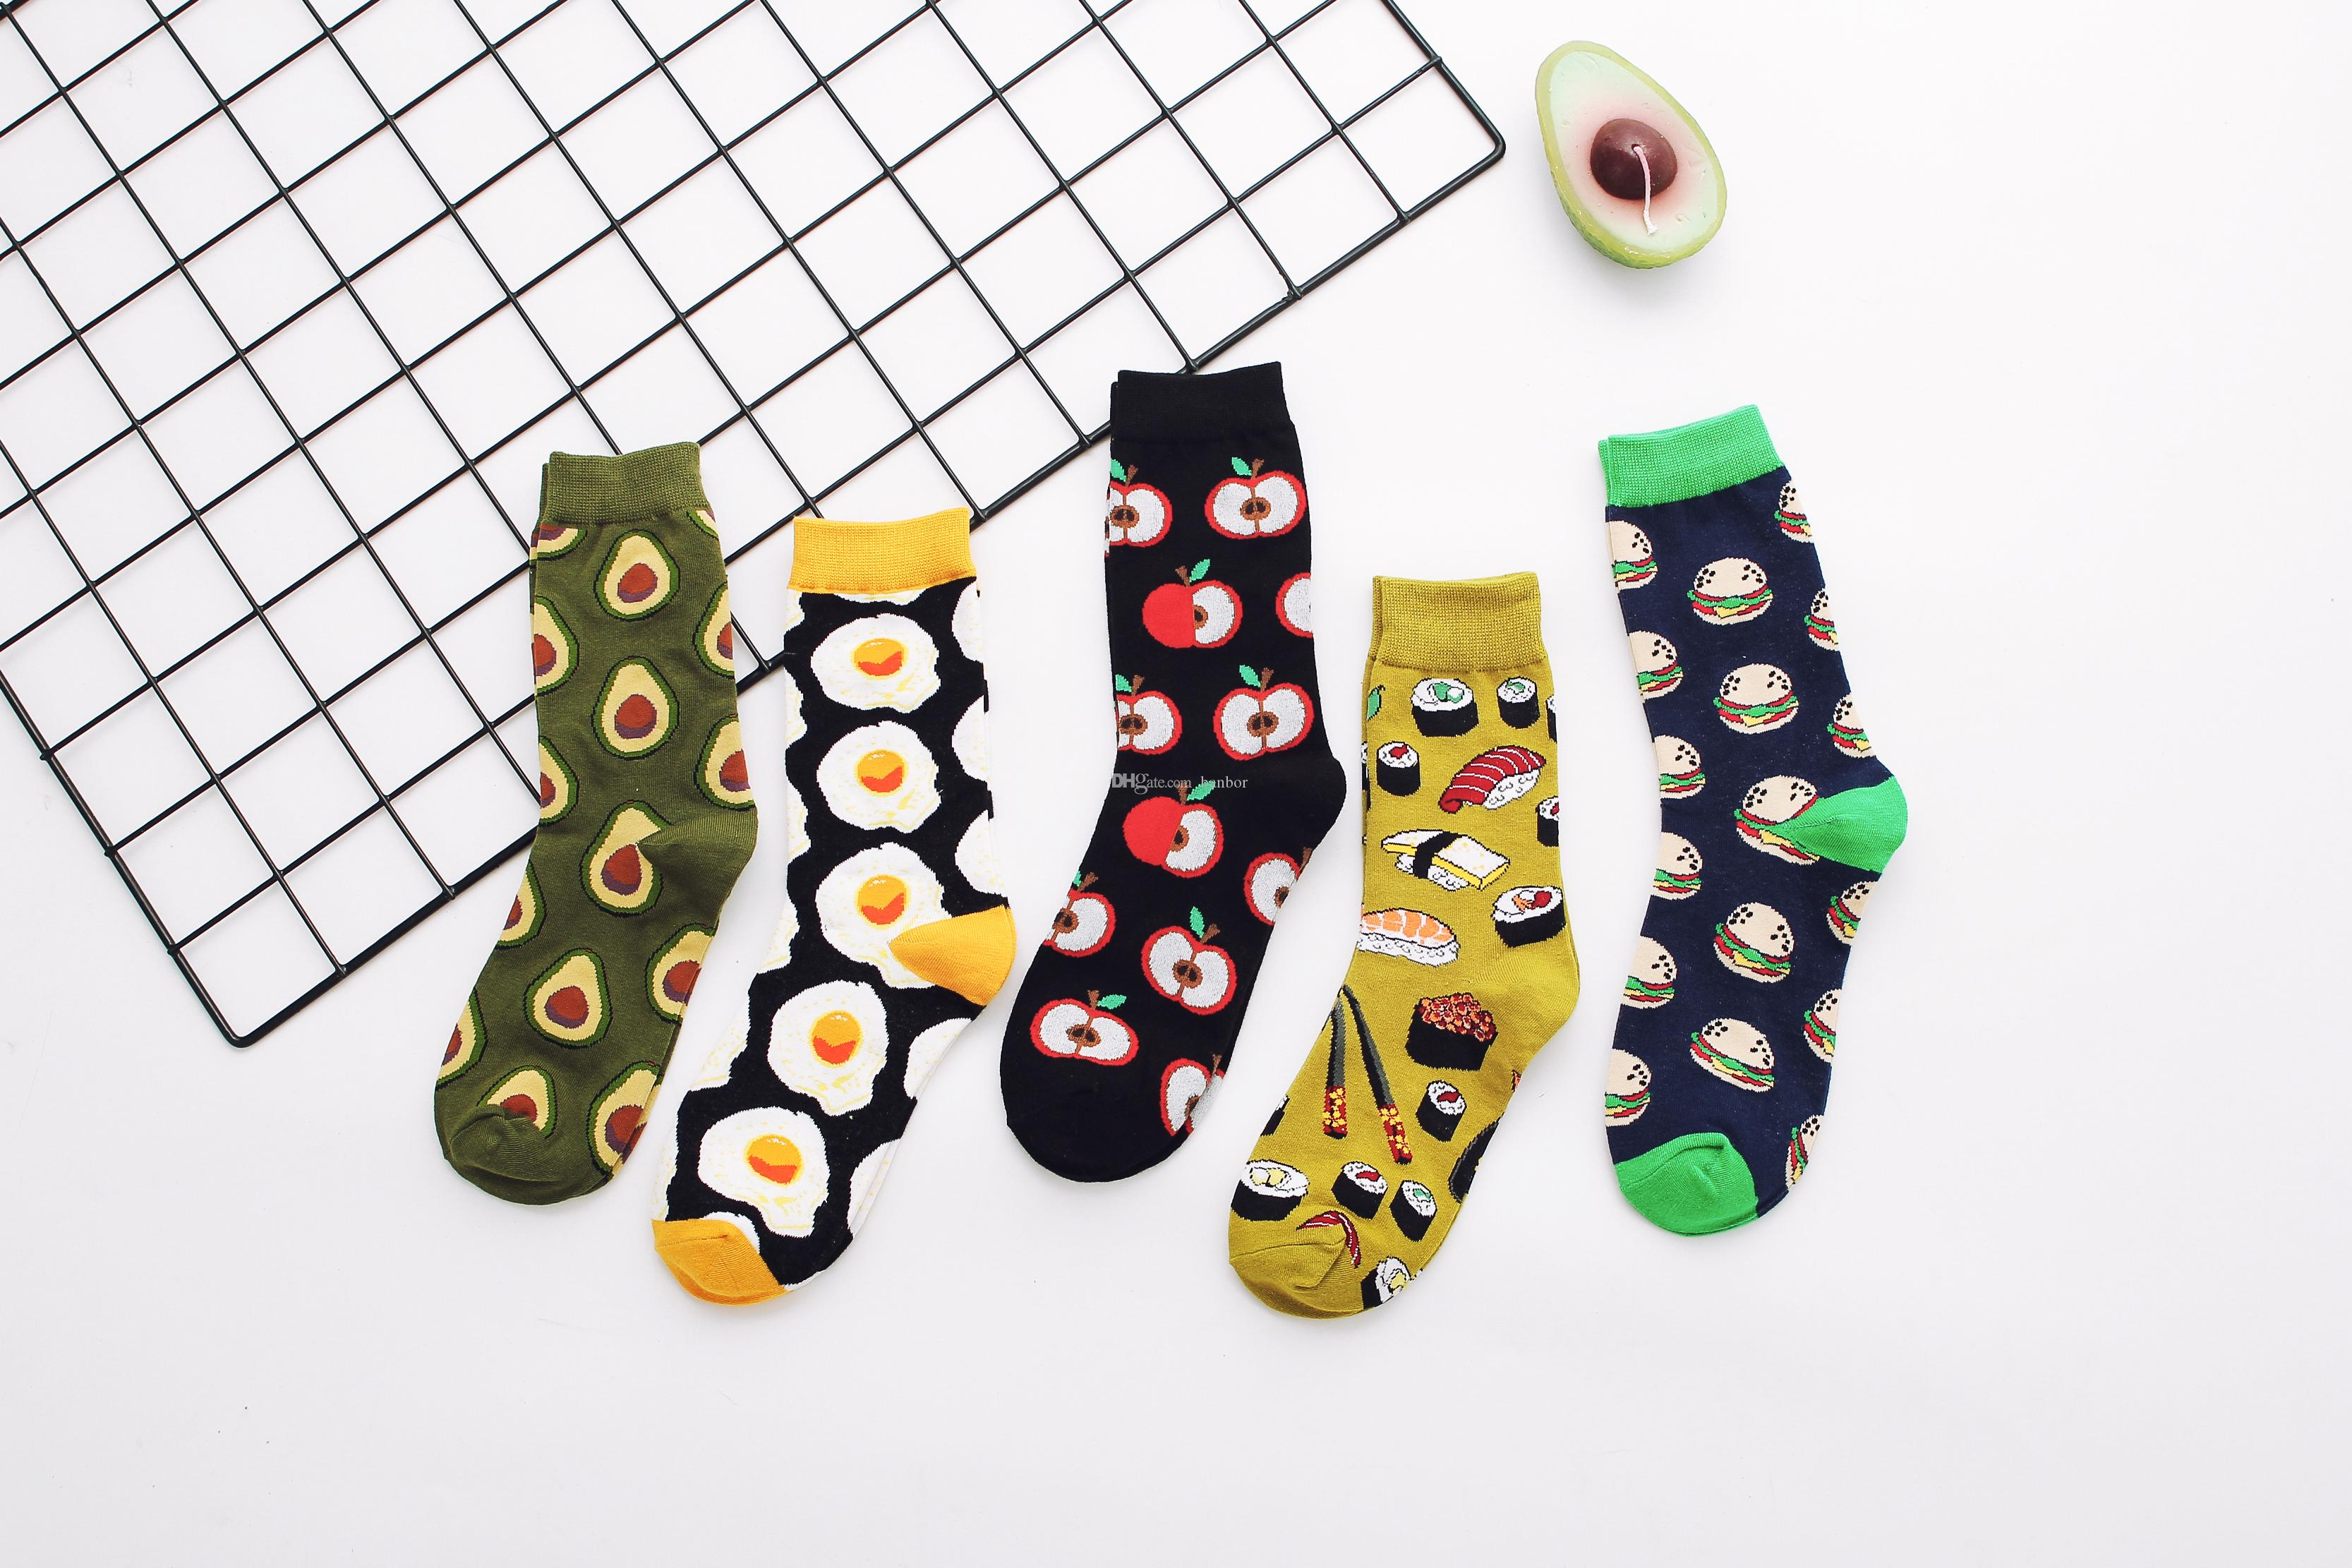 Wholesale Unisex Socks Fashion Cartoon Breathable Egg Apple Avocado Pattern High Quality Cotton Socks Free Shipping